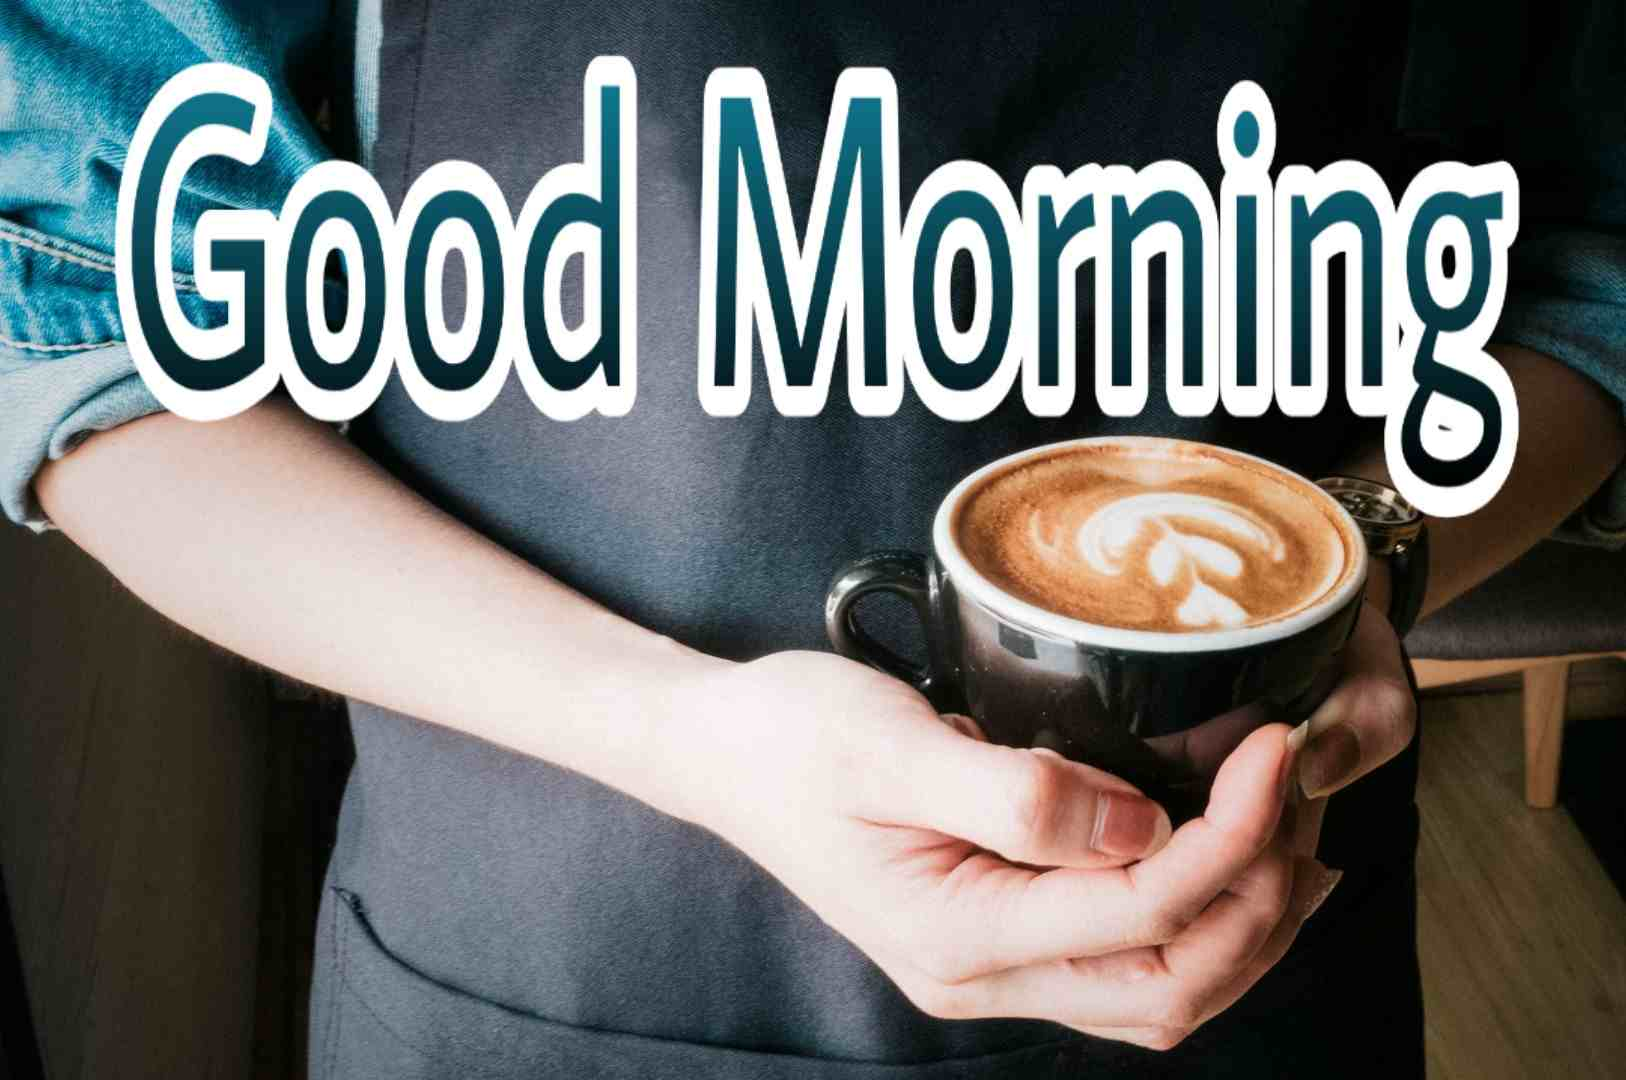 Good morning coffee images for whatsapp dp